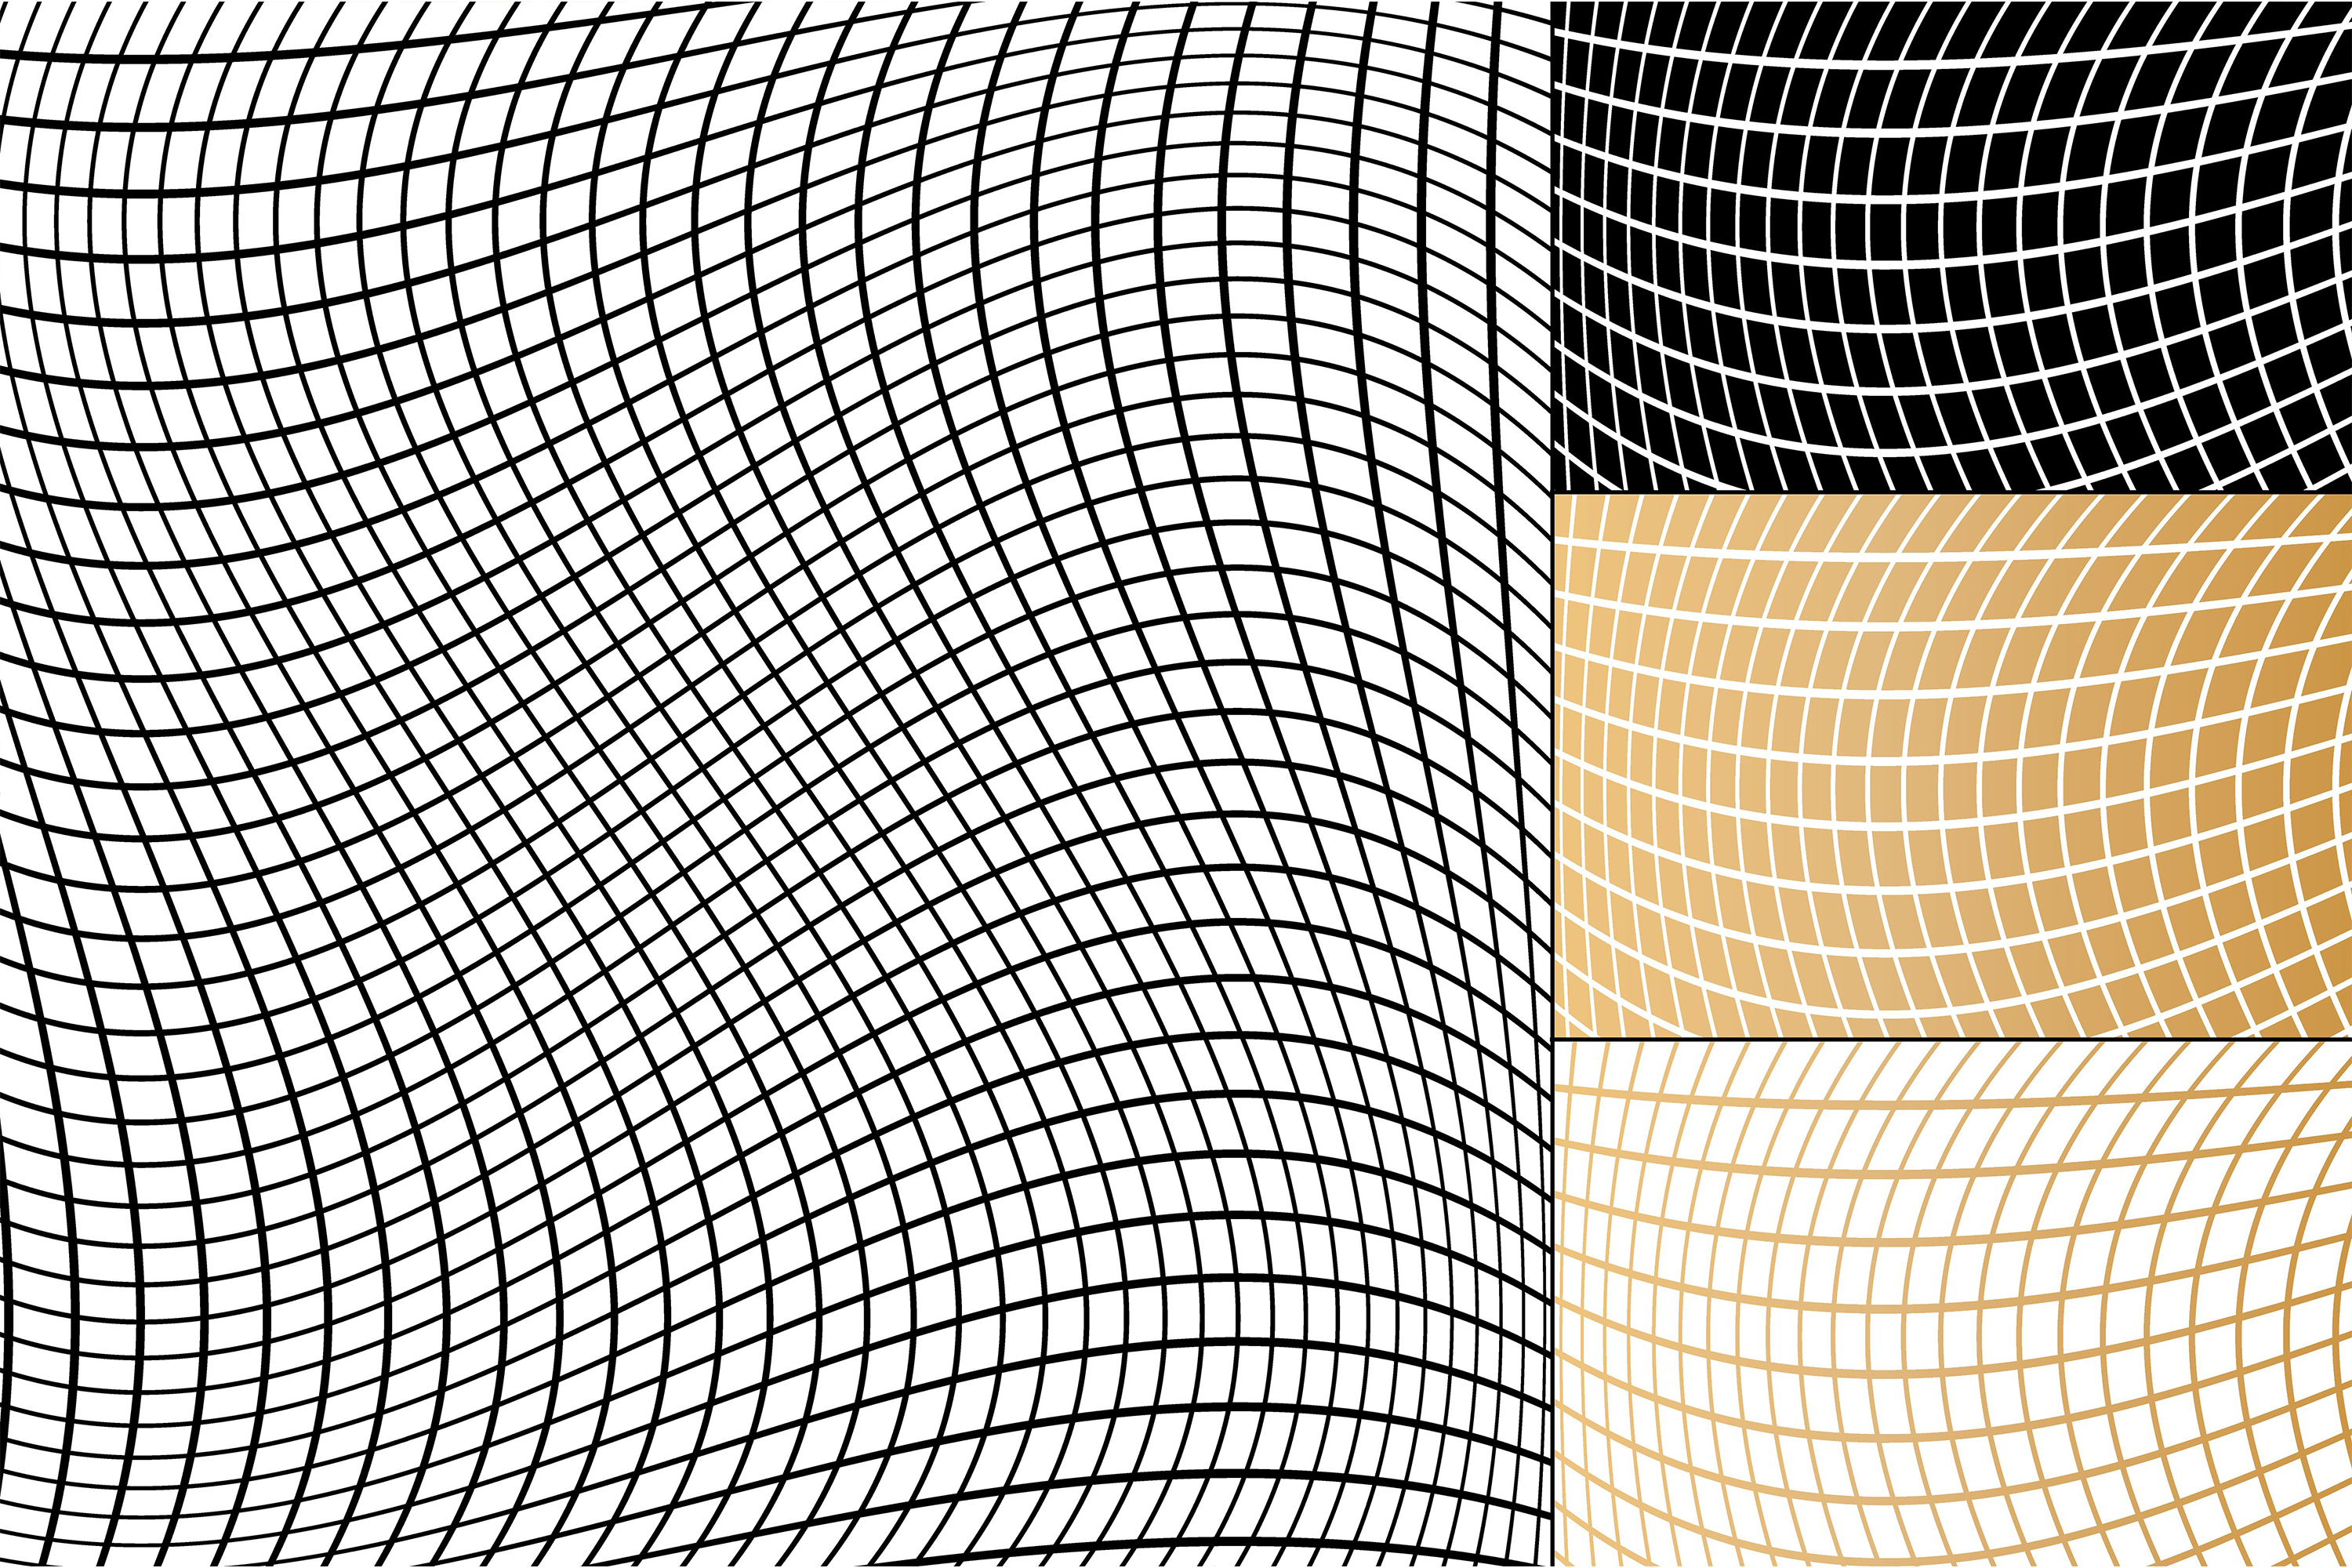 Fishnet Patterns example image 3